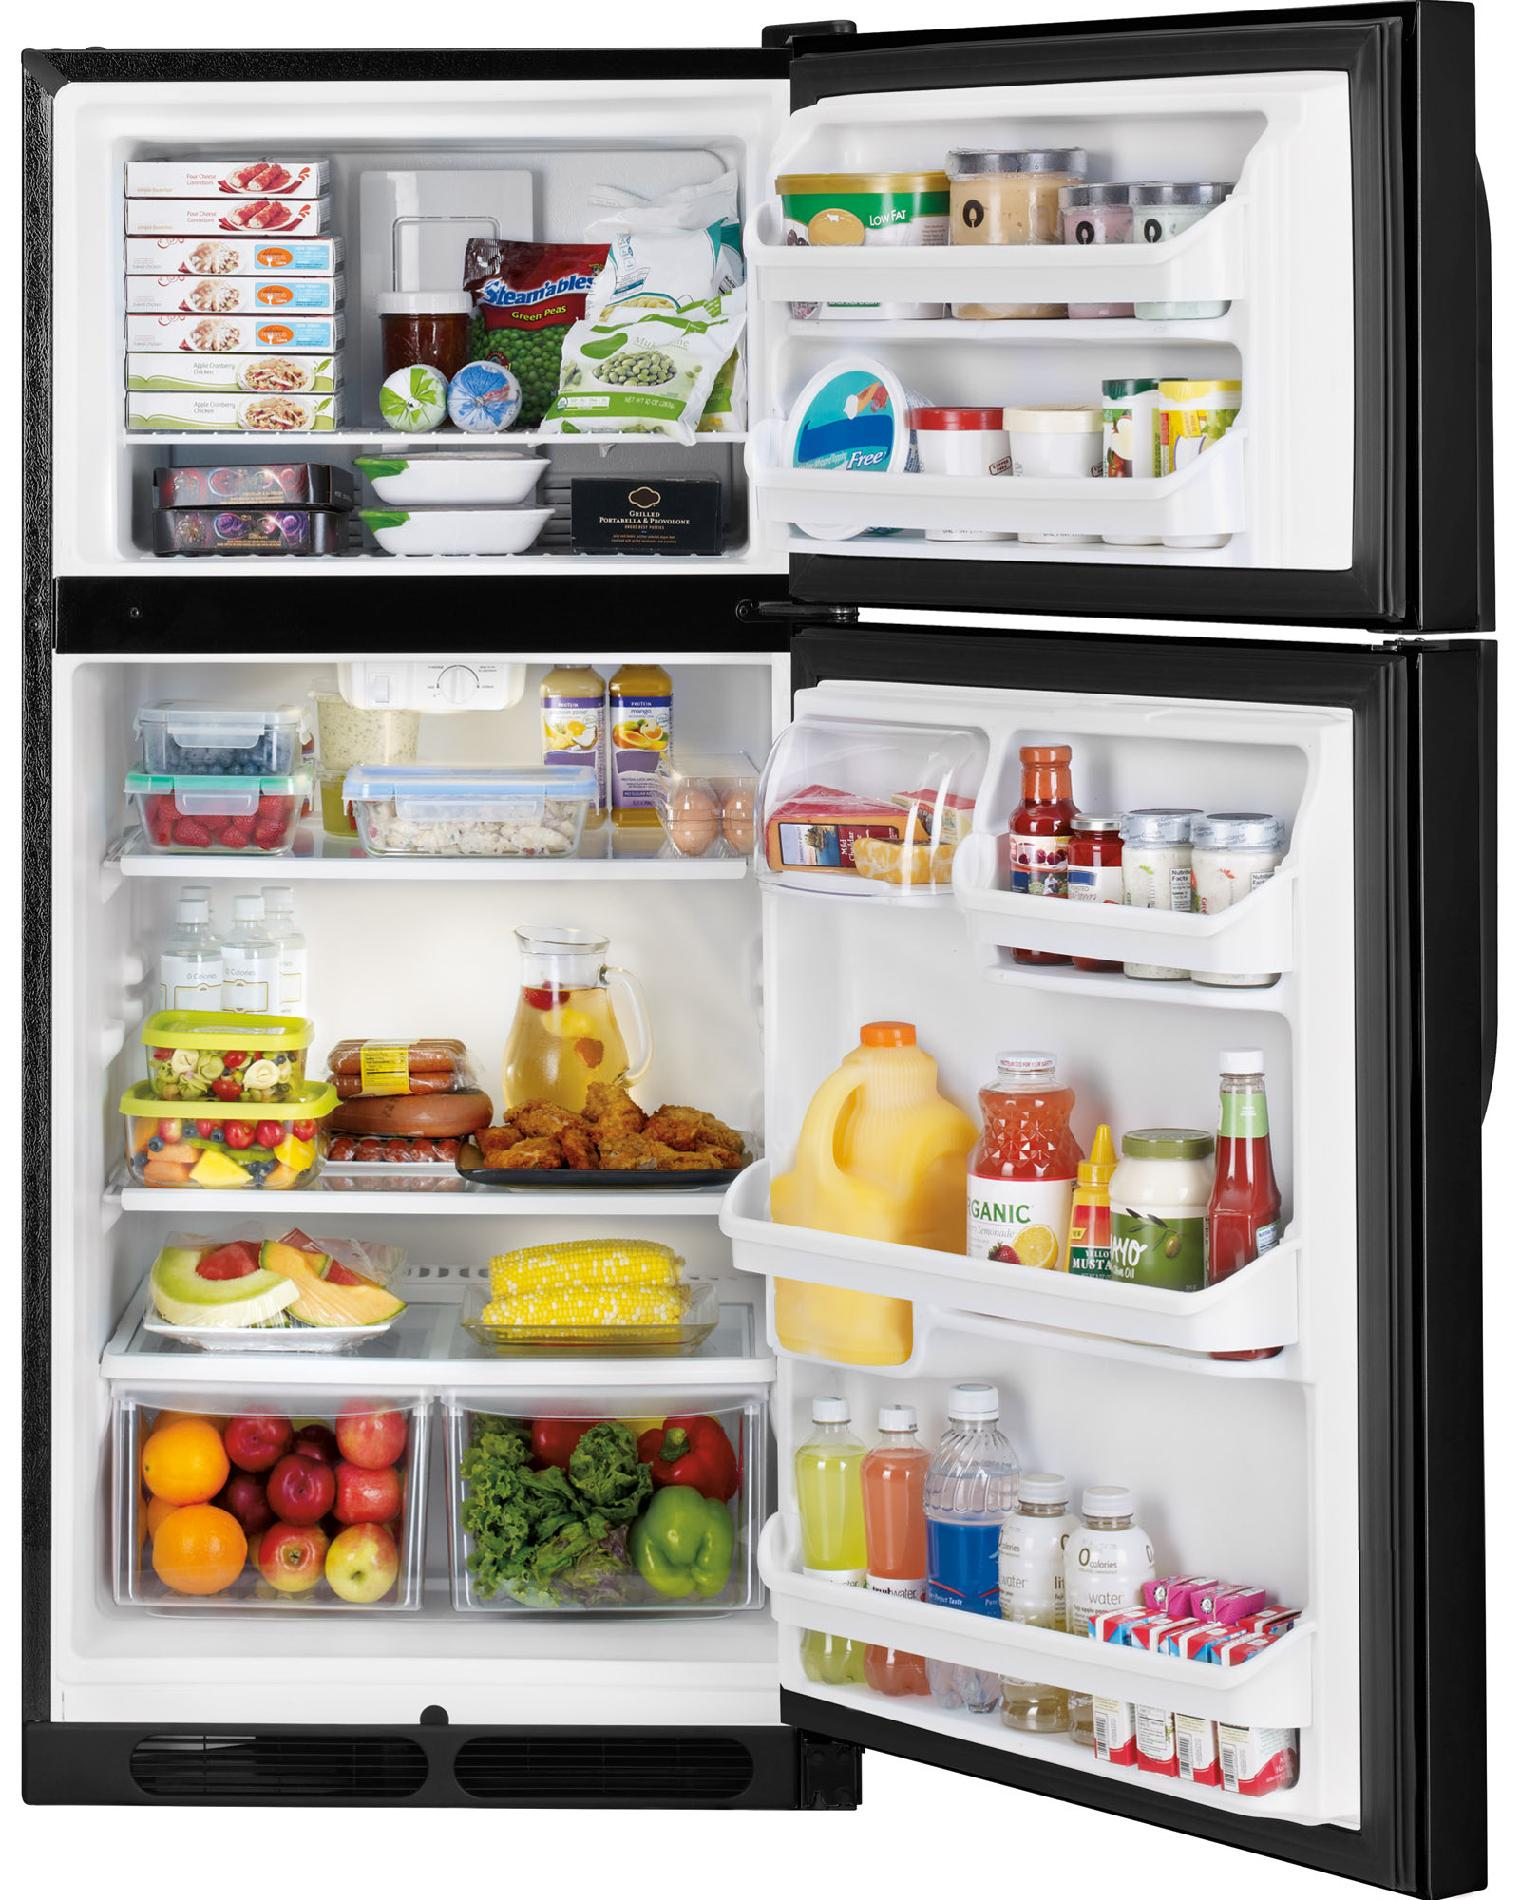 Kenmore 60309 14.5 cu. ft. Top Freezer Refrigerator - Black